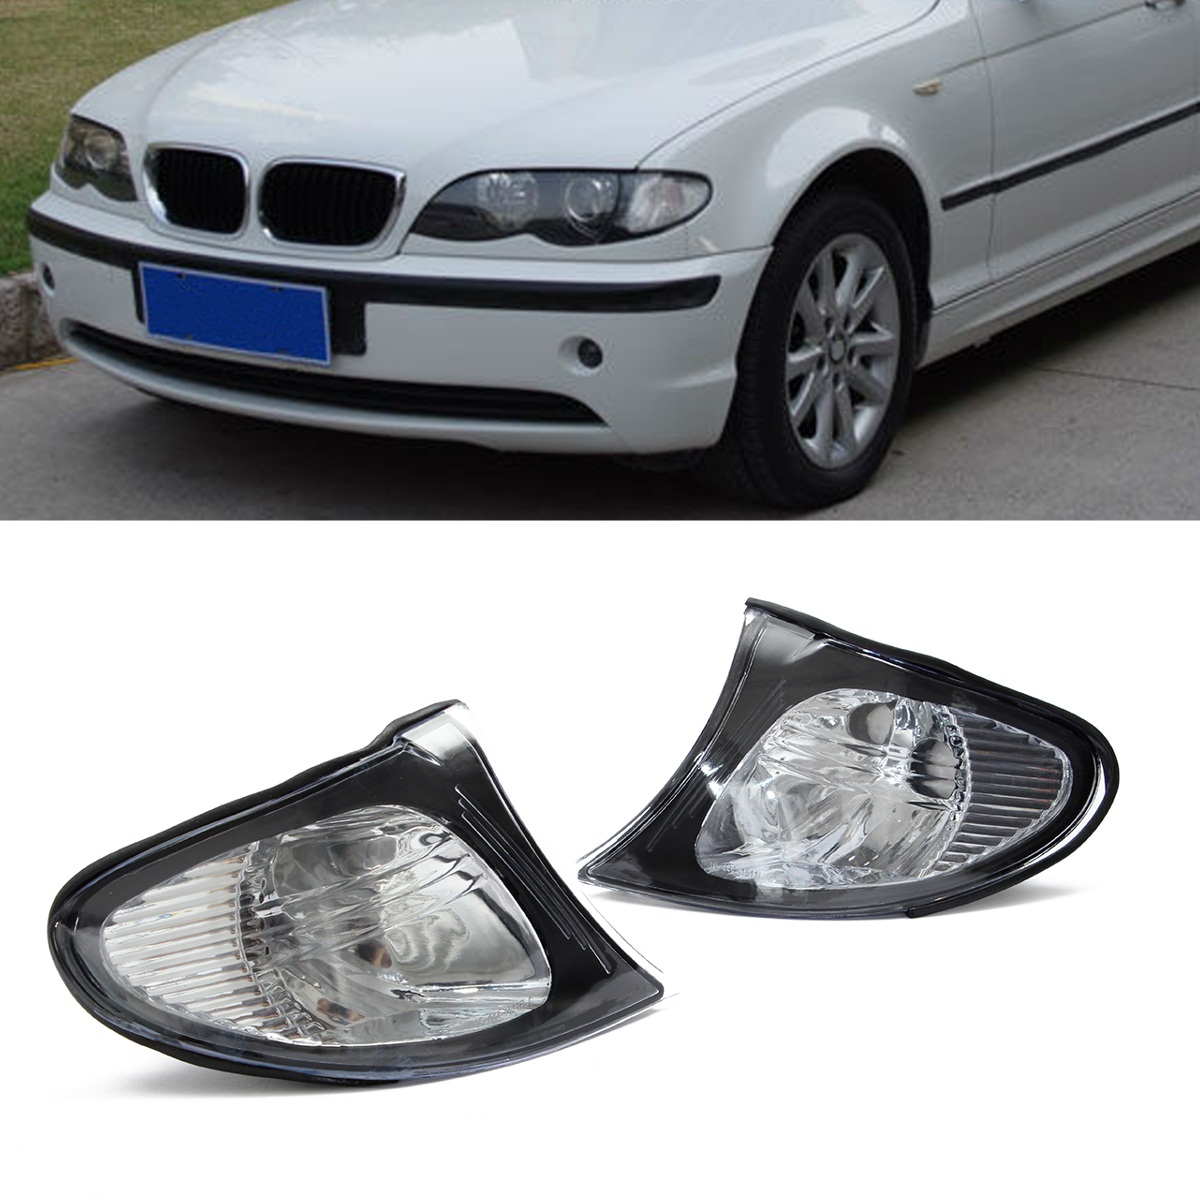 Pair Brand New Car Corner Lights Sidelights Lens Clear Left&Right For BMW E46 3-Series 325i 325xi 330i 330xi 4DR 2002-2005 new 1 pair car left